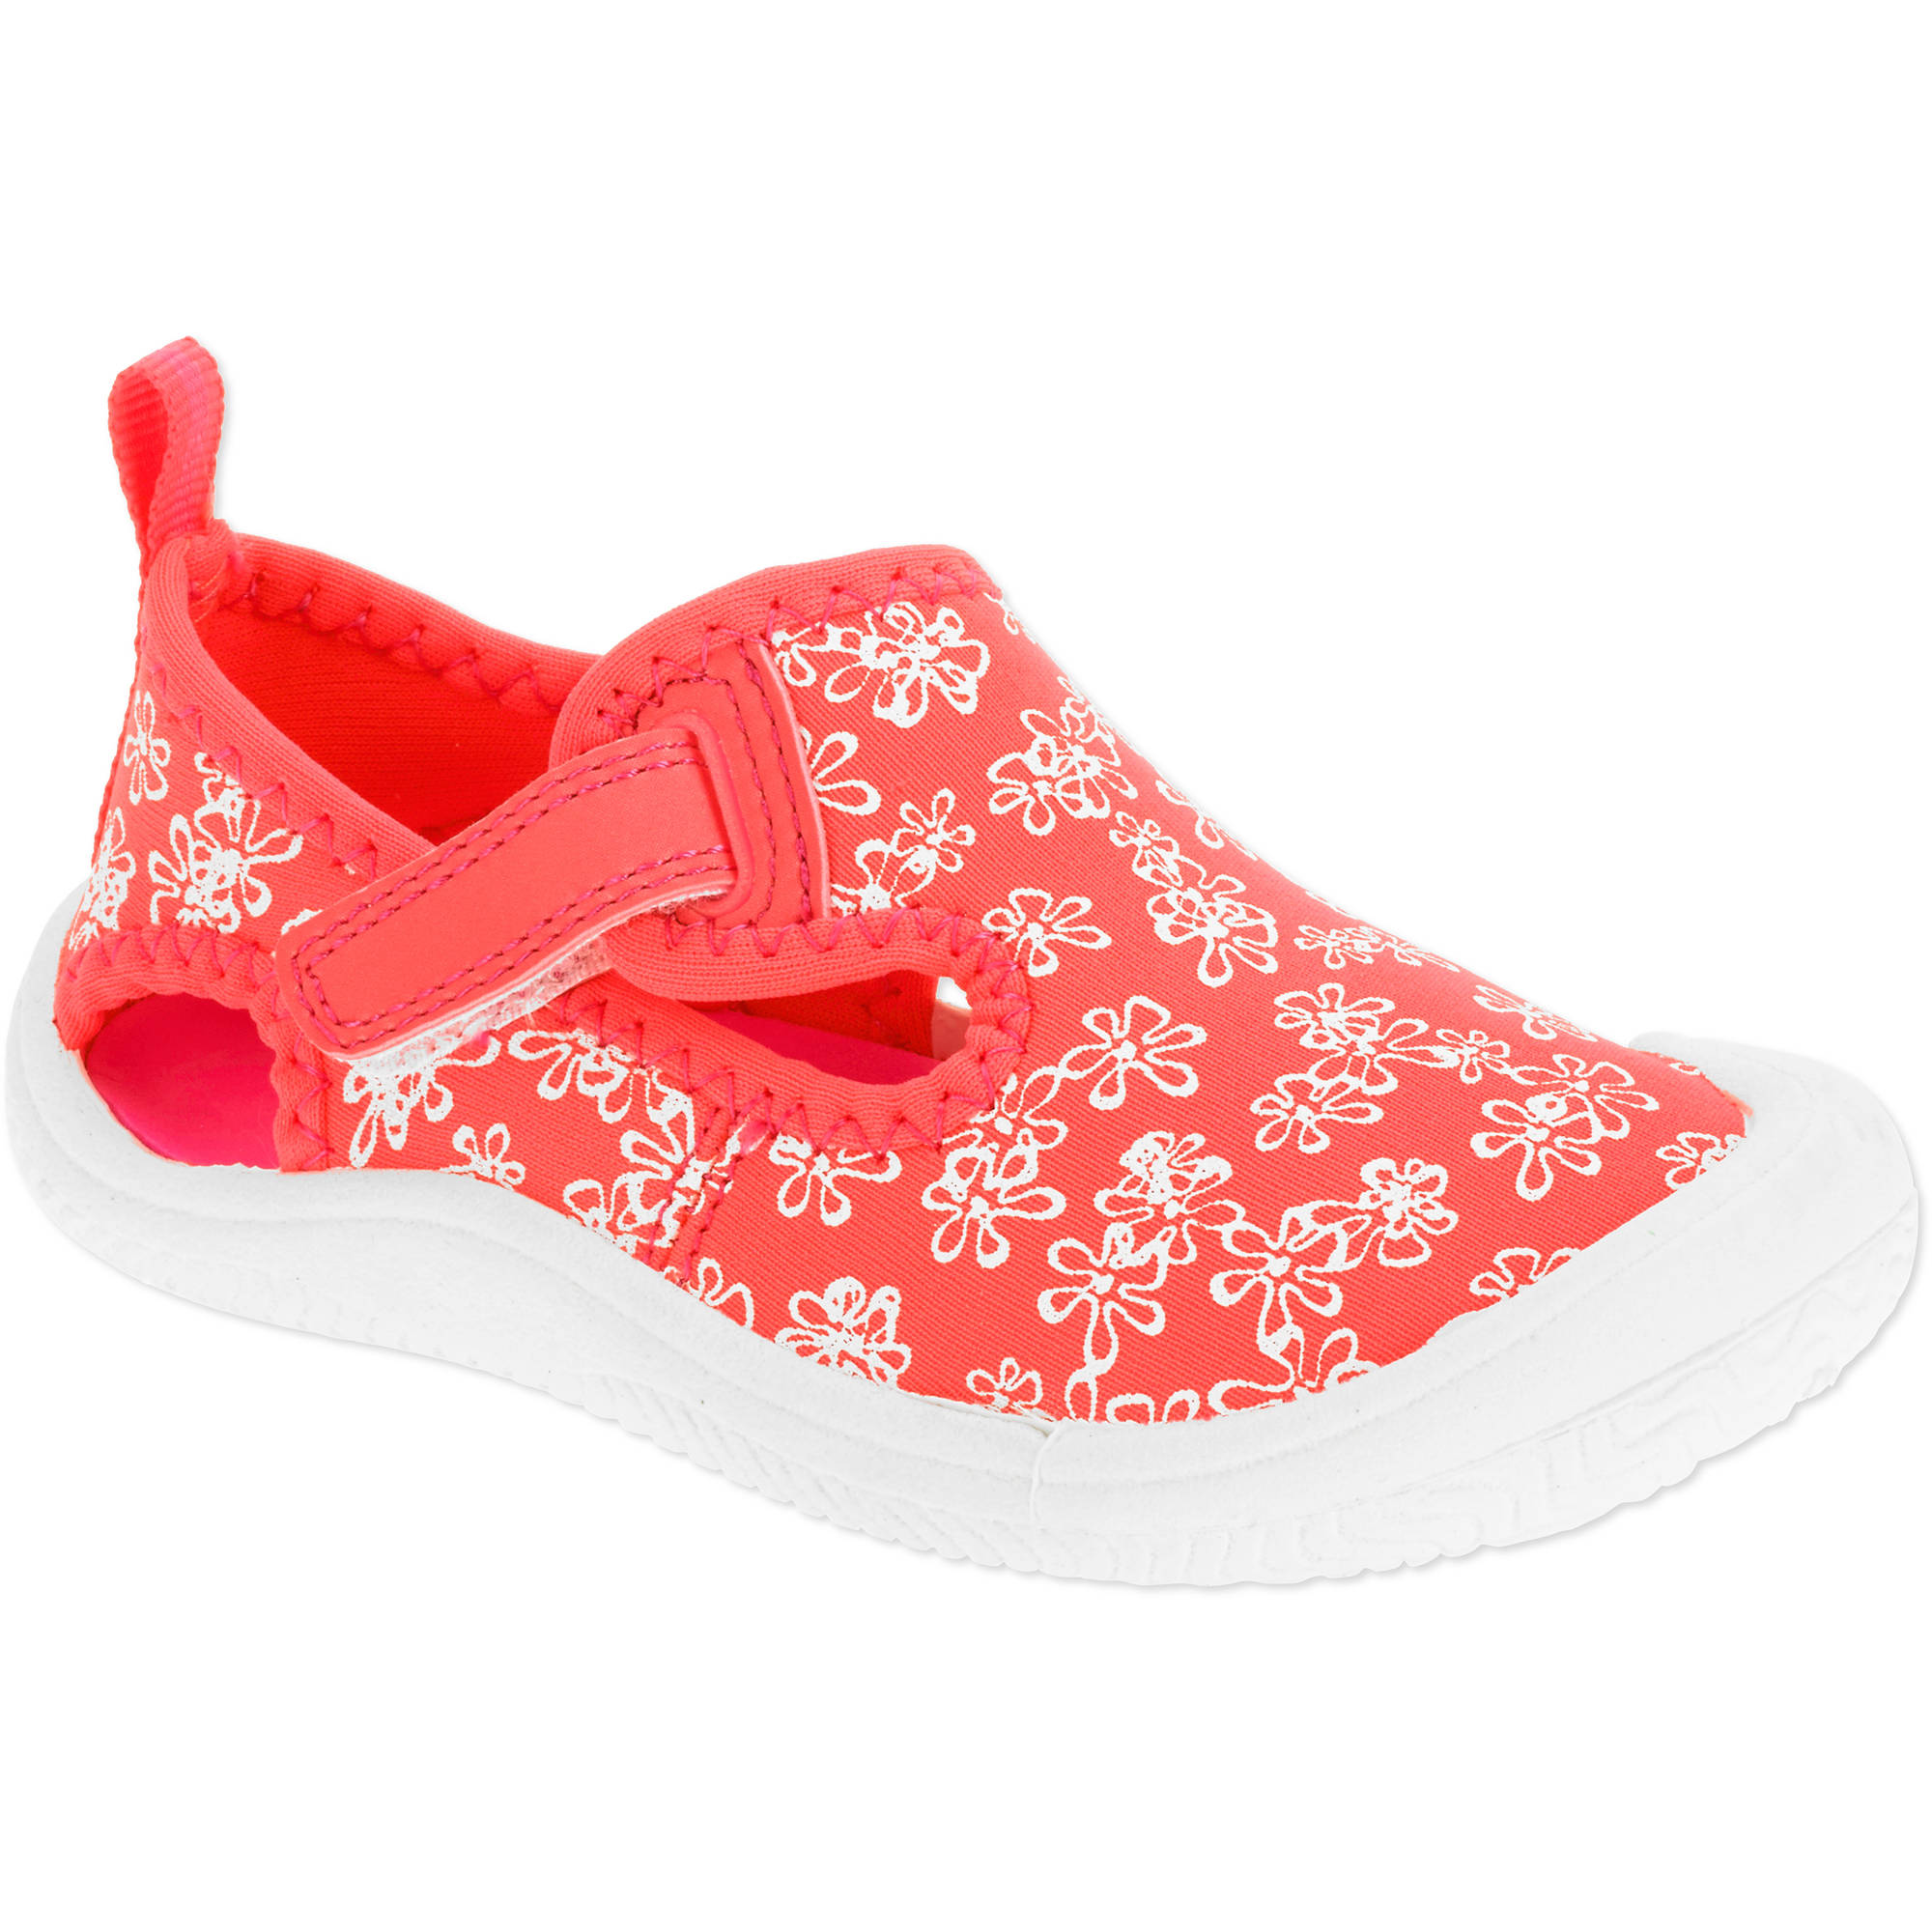 OP Girls' Toddler Bump Toe Sandal